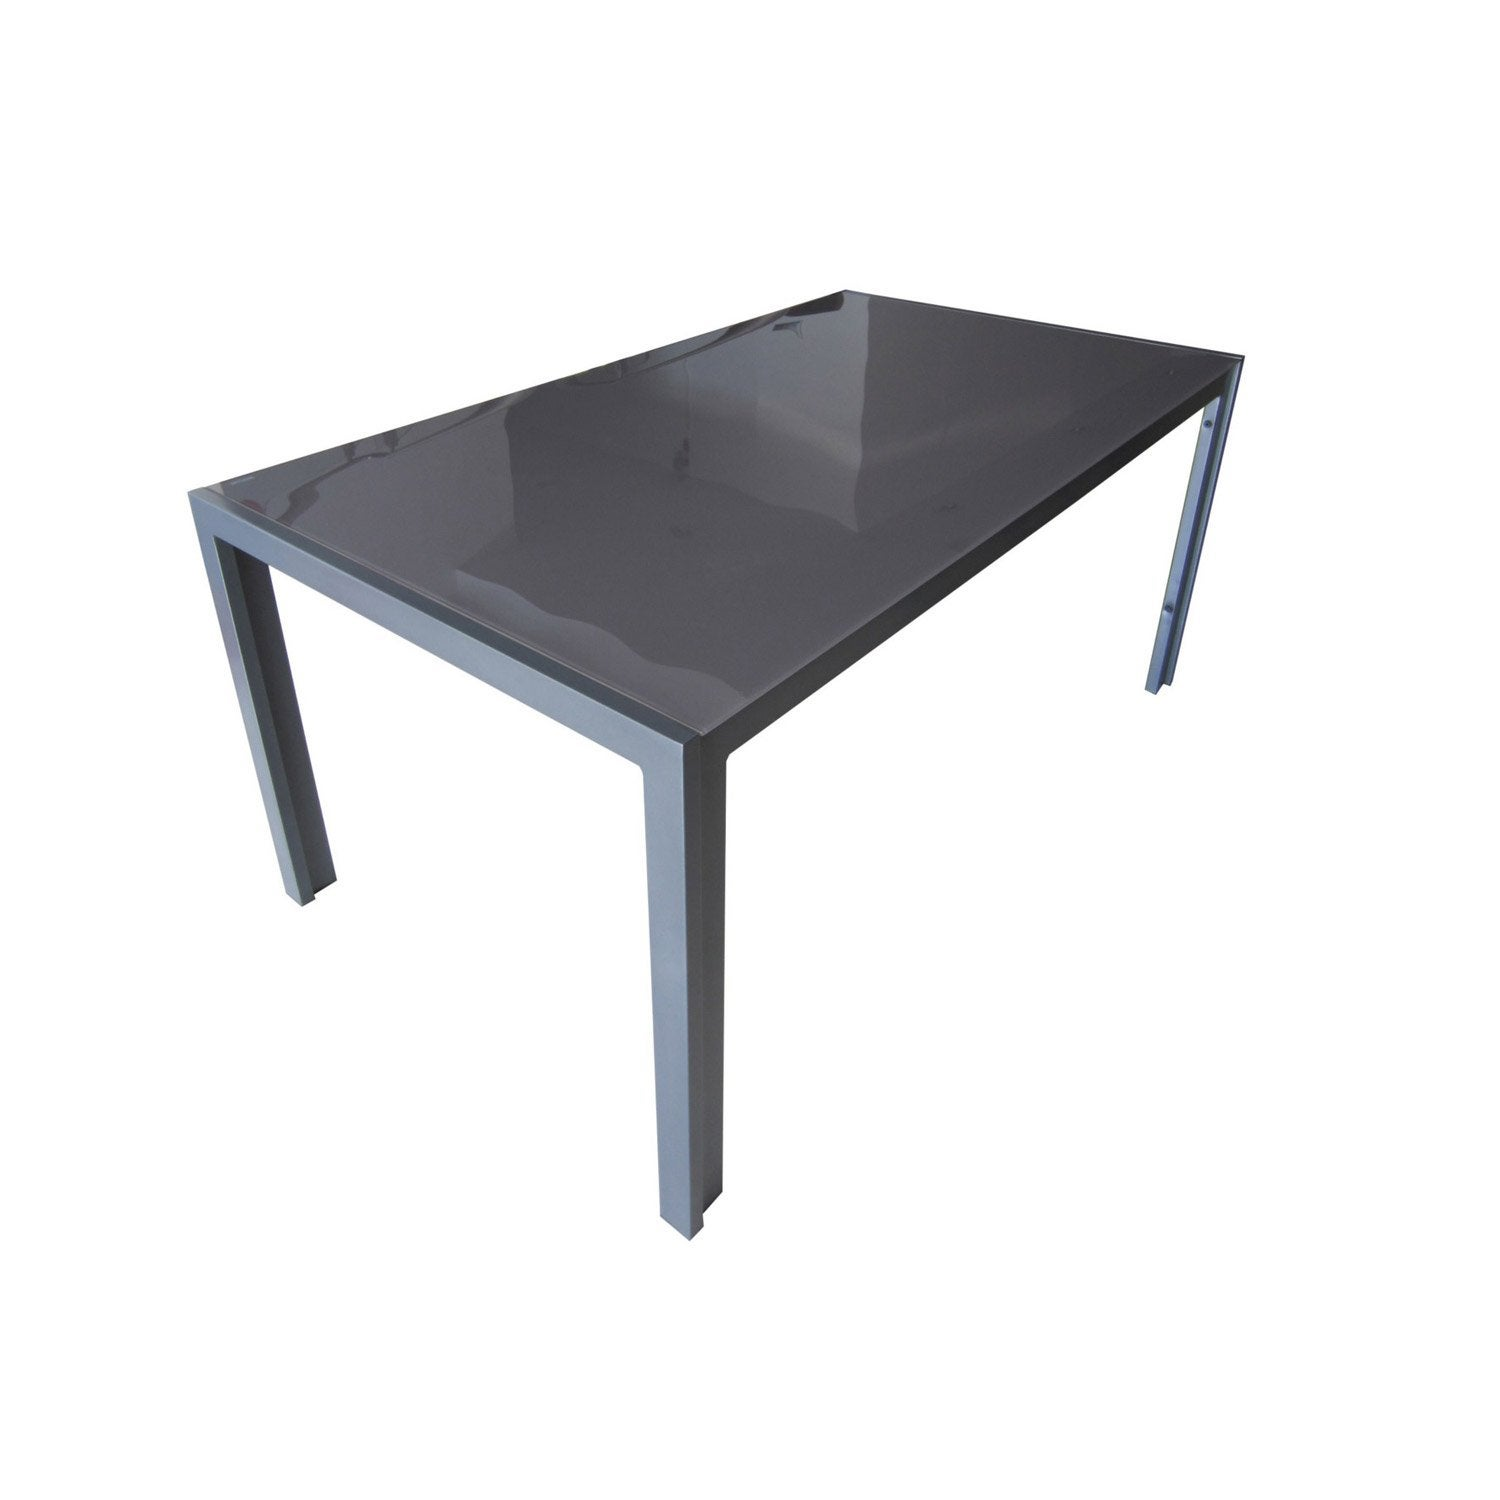 table de jardin rectangulaire grey gris 6 personnes leroy merlin. Black Bedroom Furniture Sets. Home Design Ideas